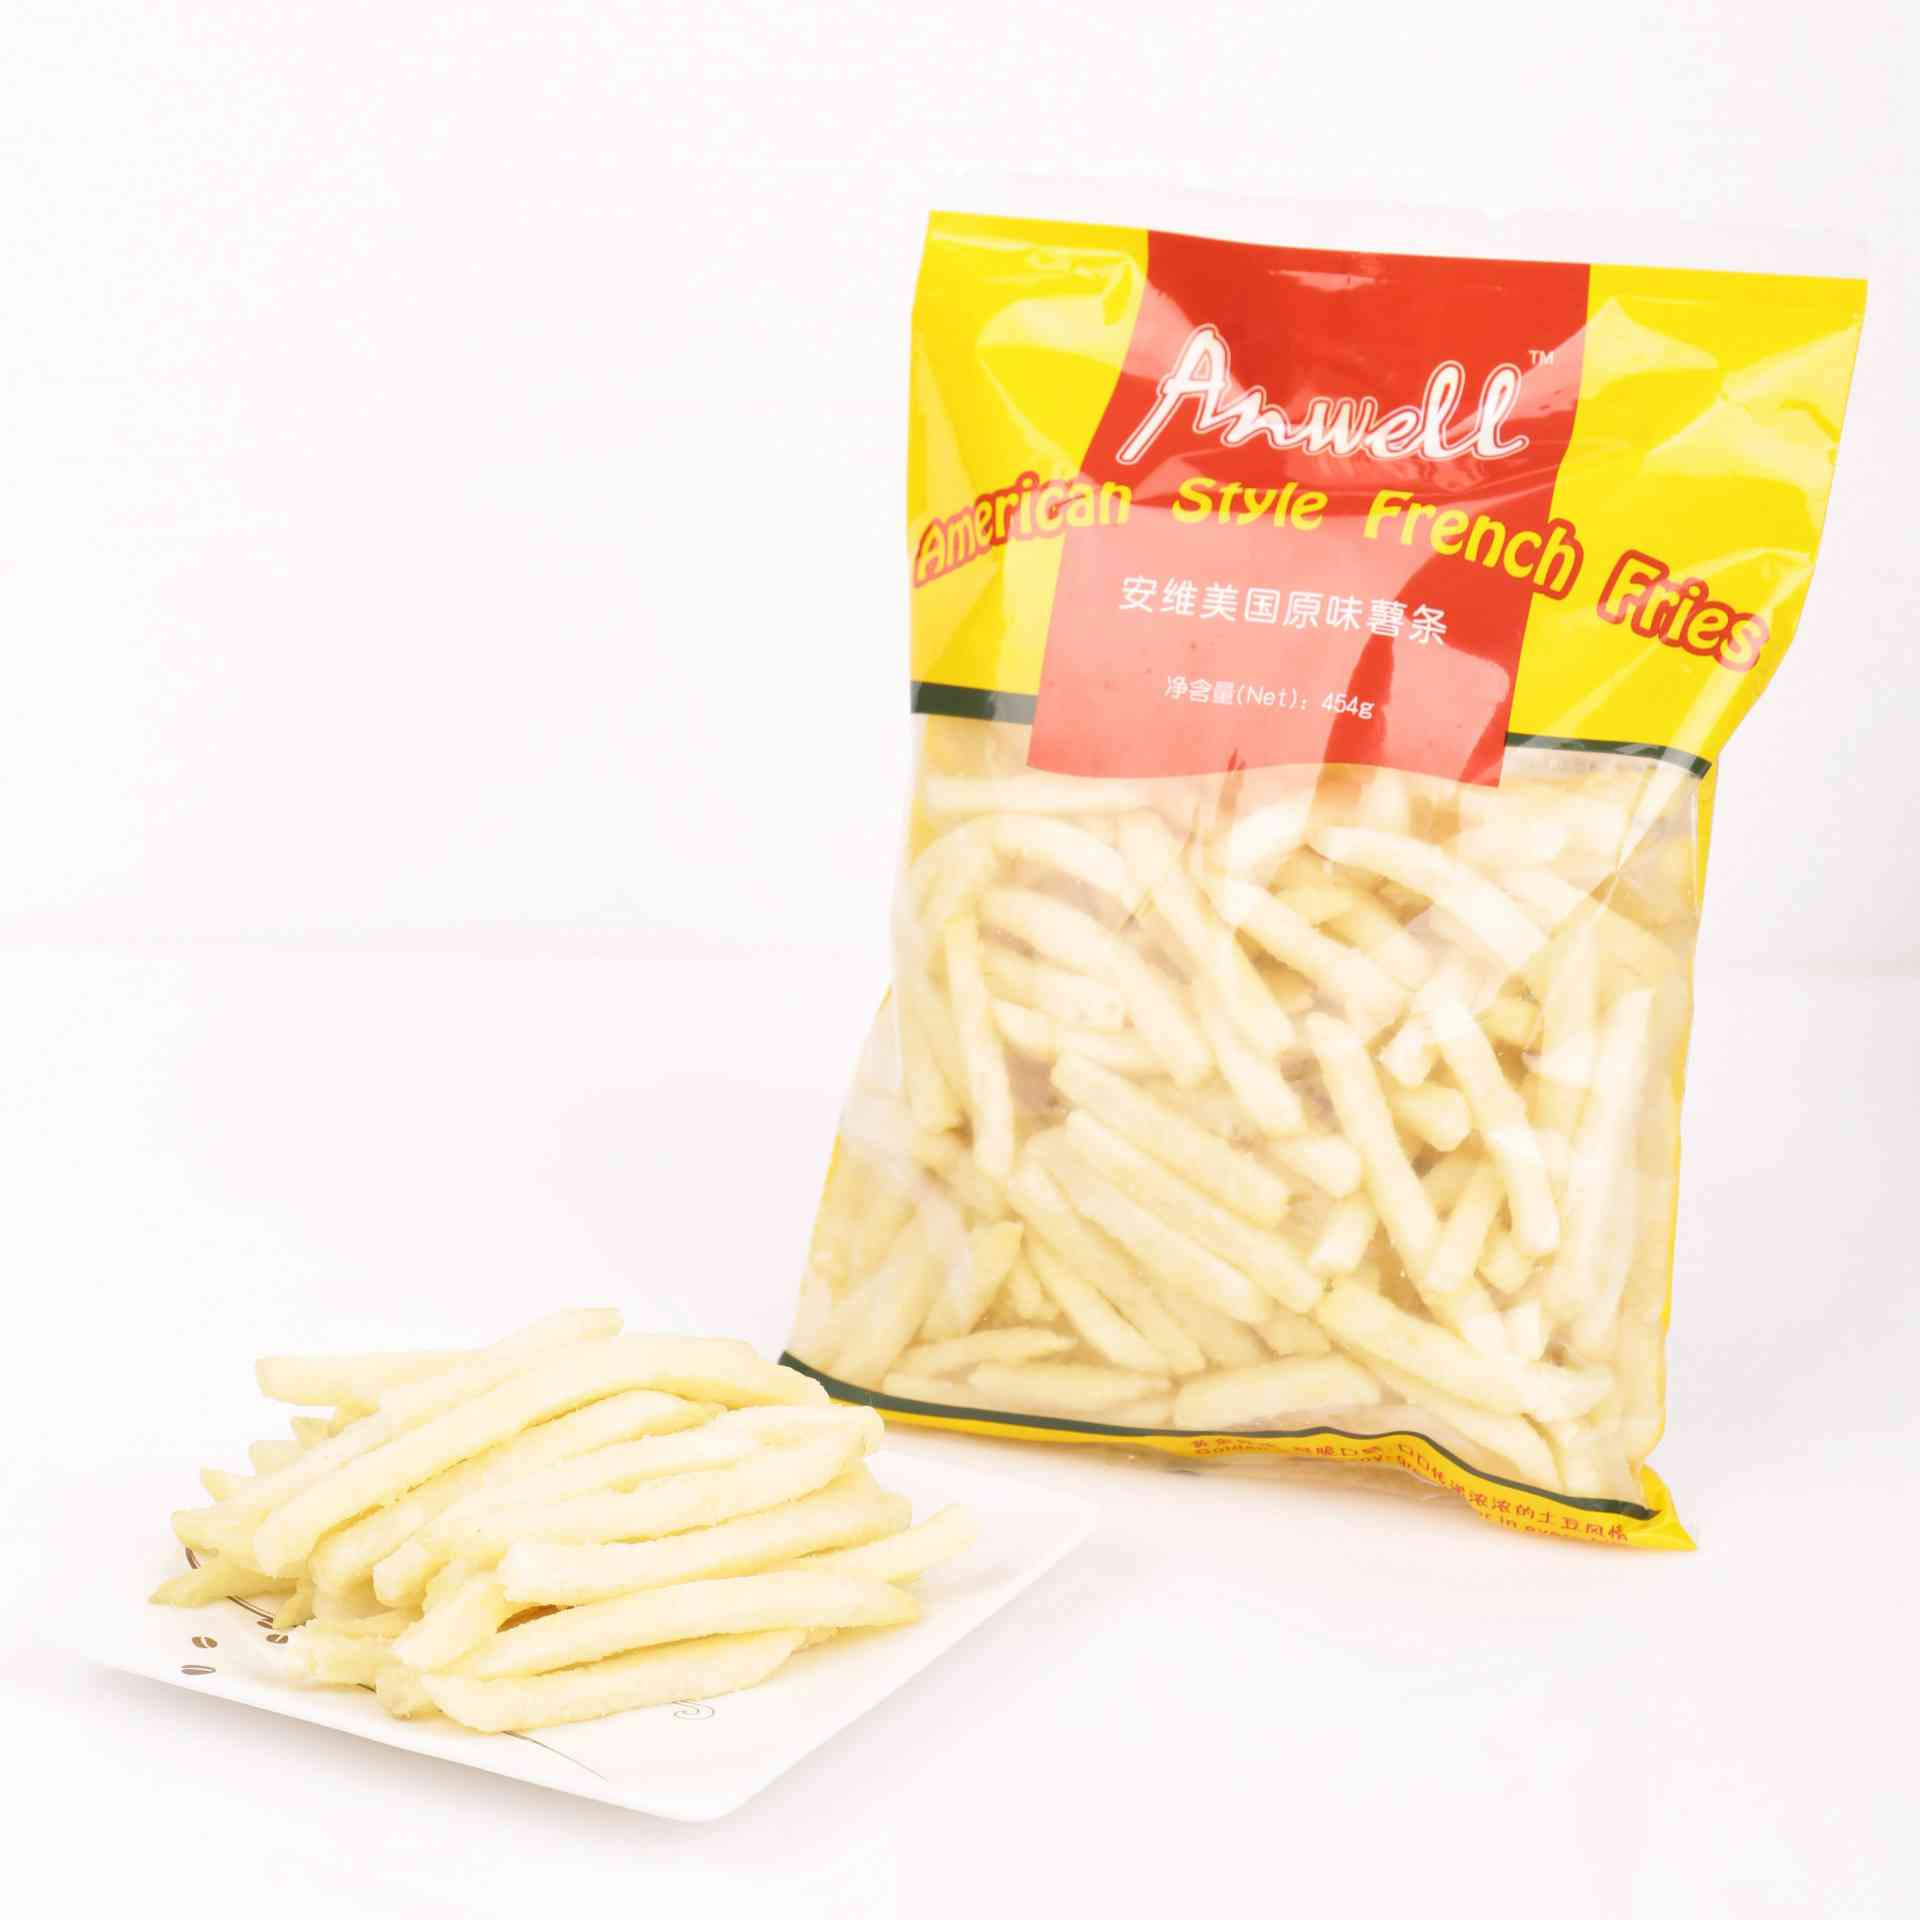 frozen french fries made by quick freezer machine